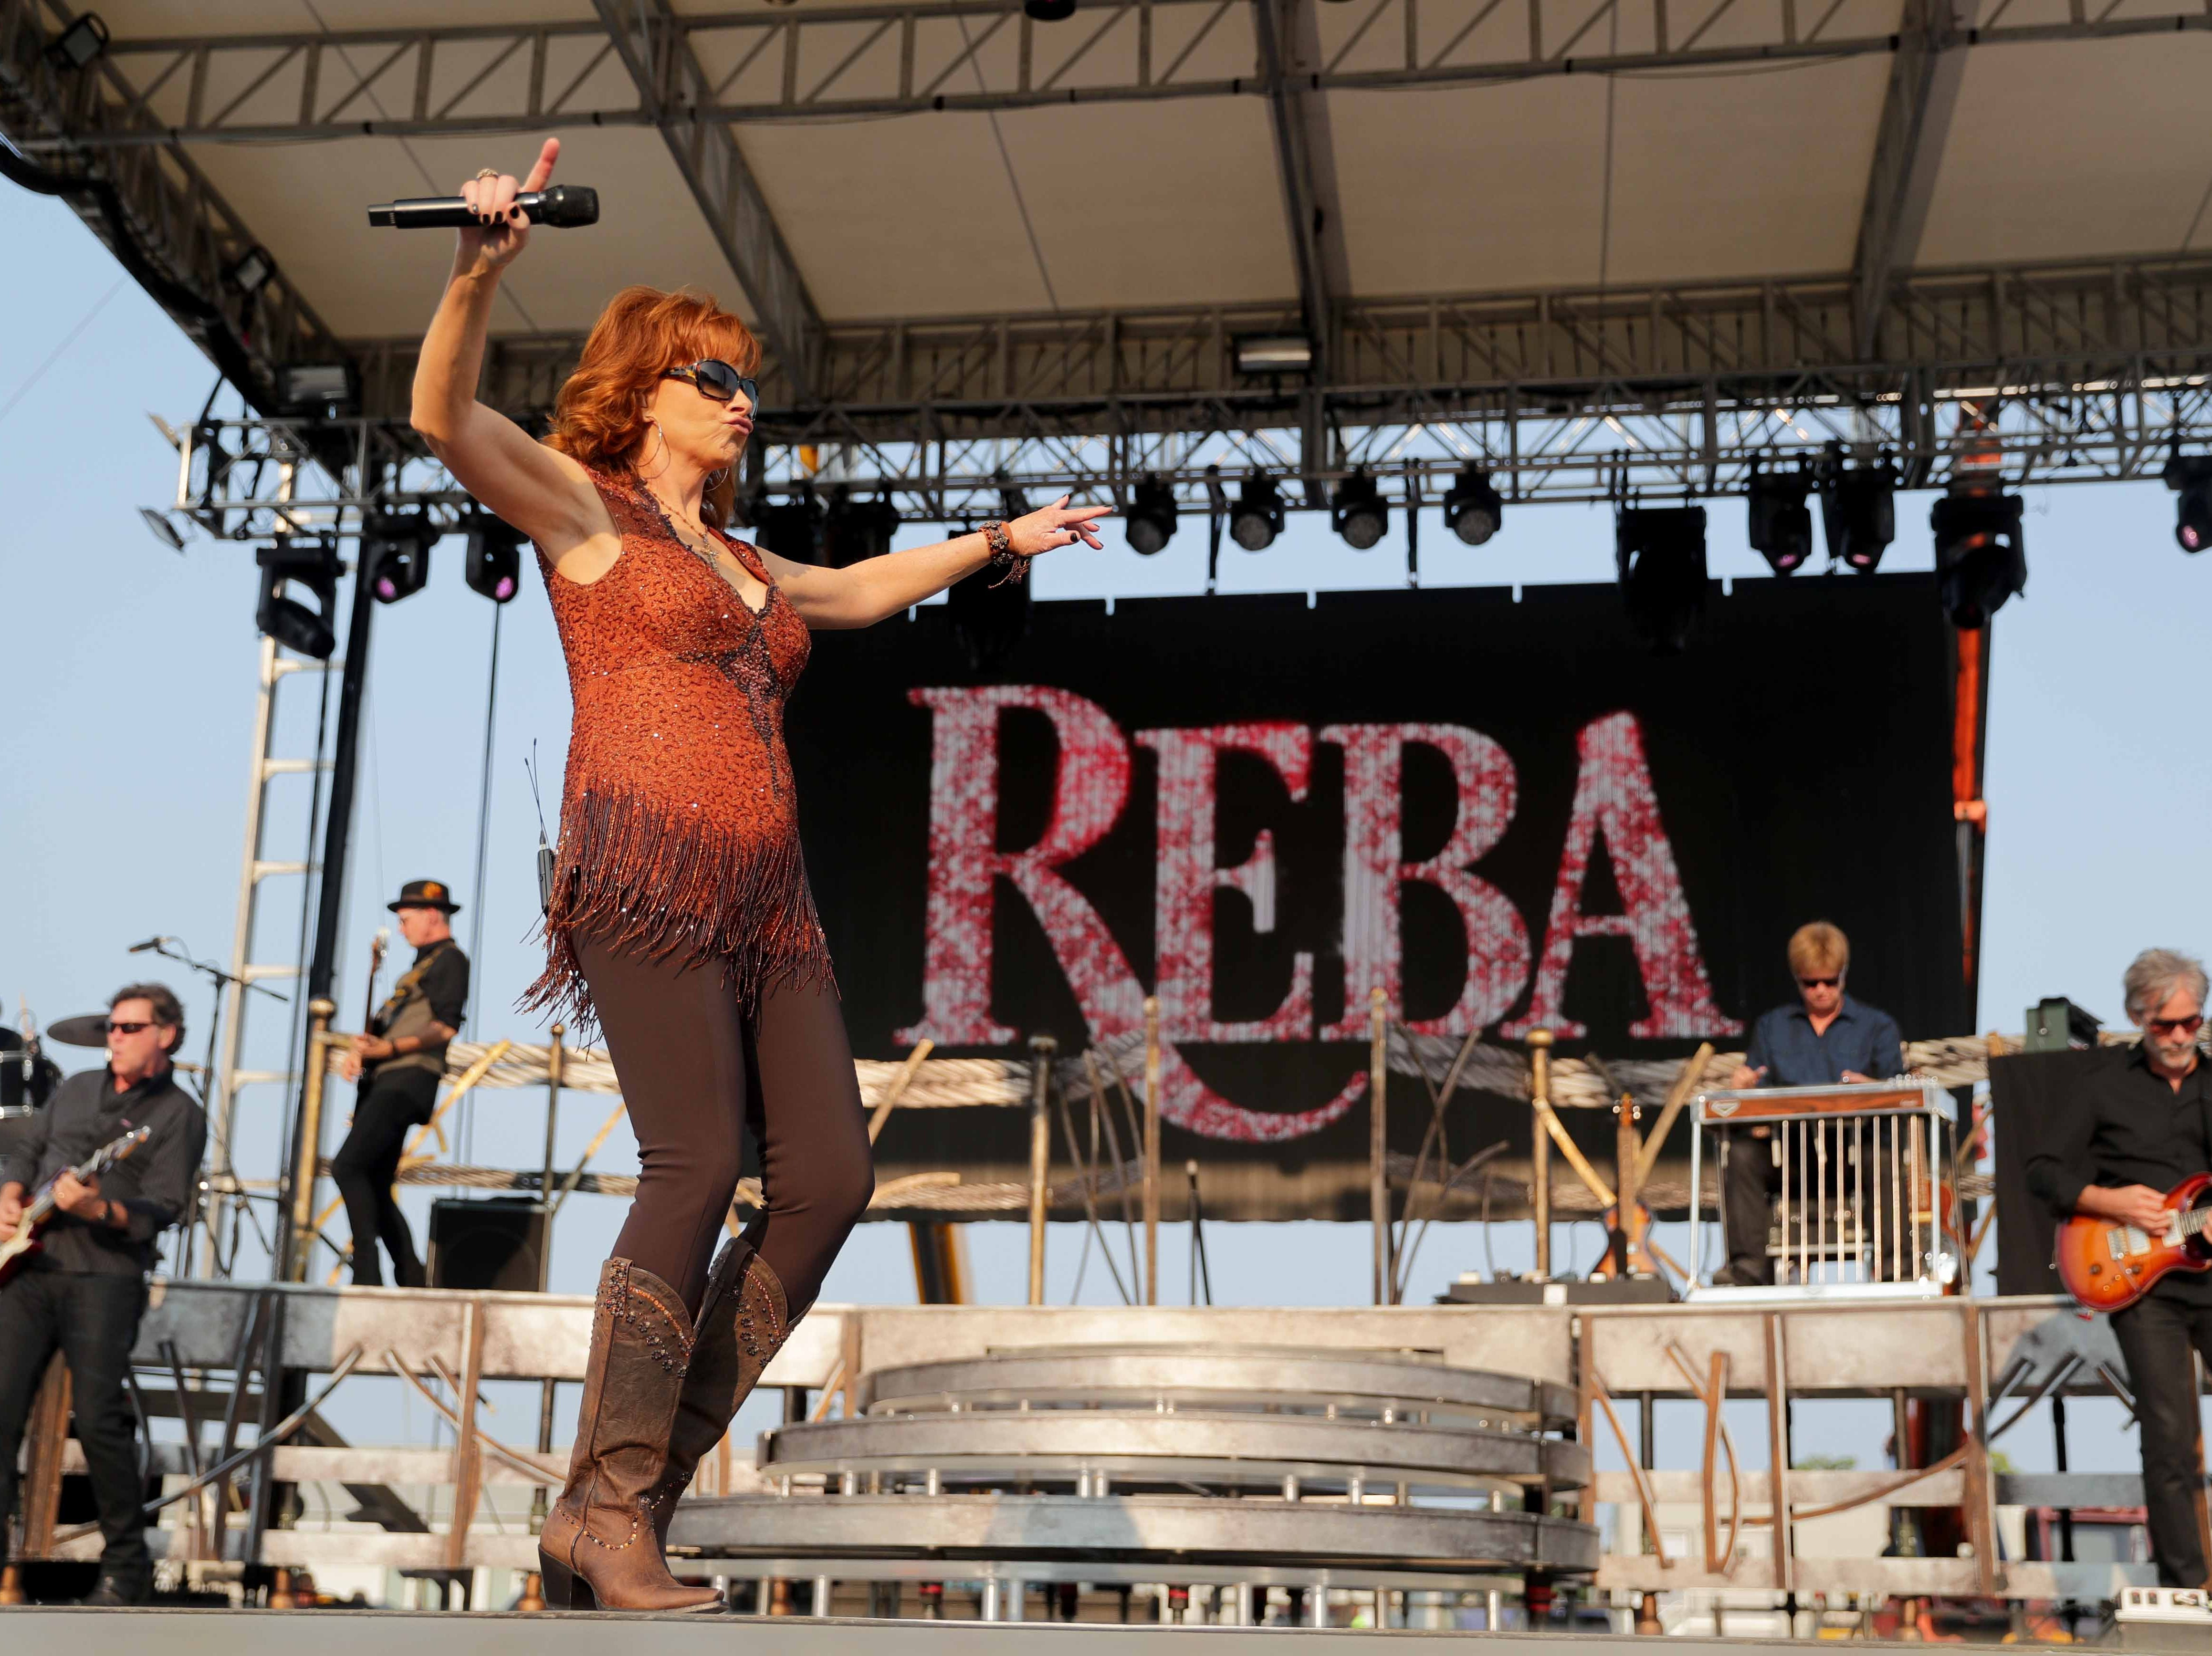 Reba McEntire performs at the Wisconsin State Fair.